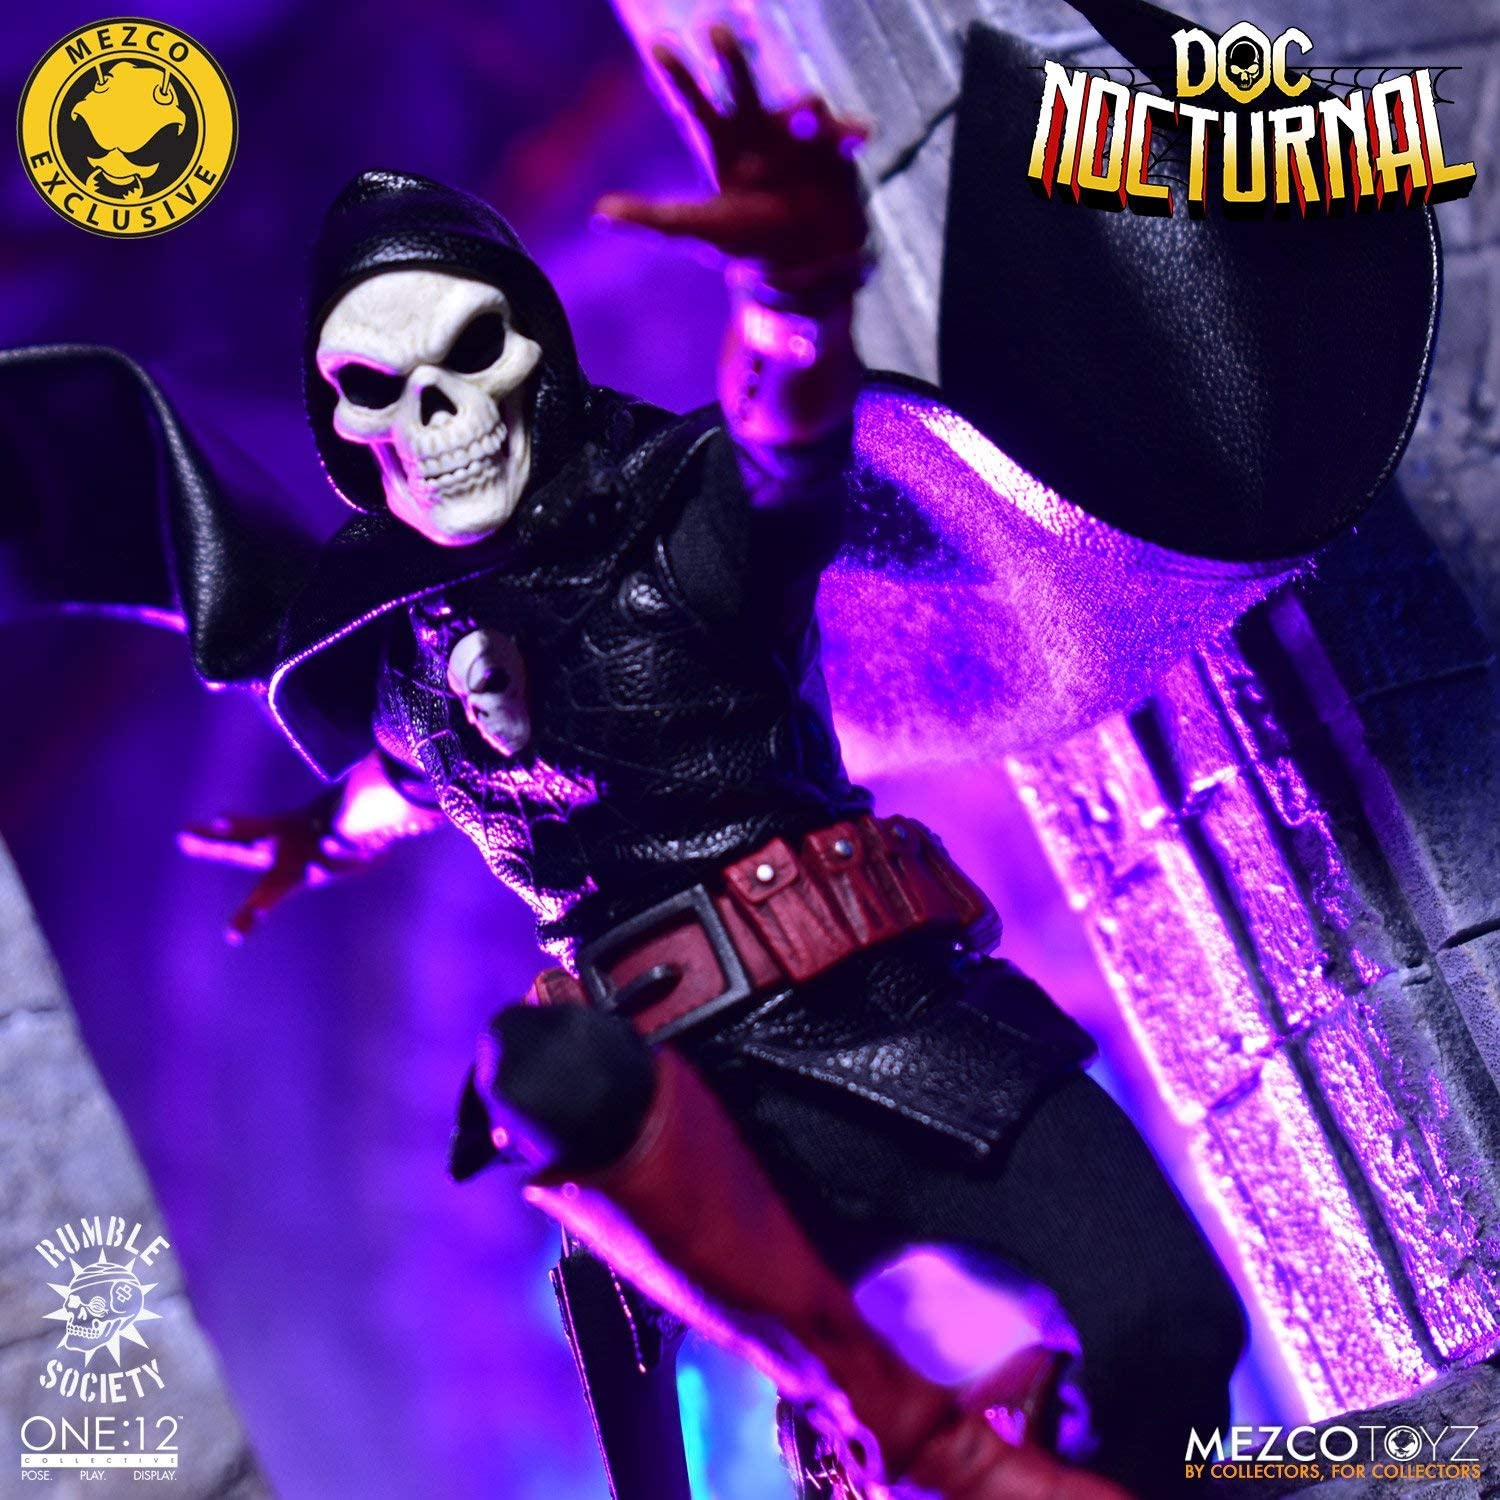 Mezco One 12 Doc Nocturnal Cape Only